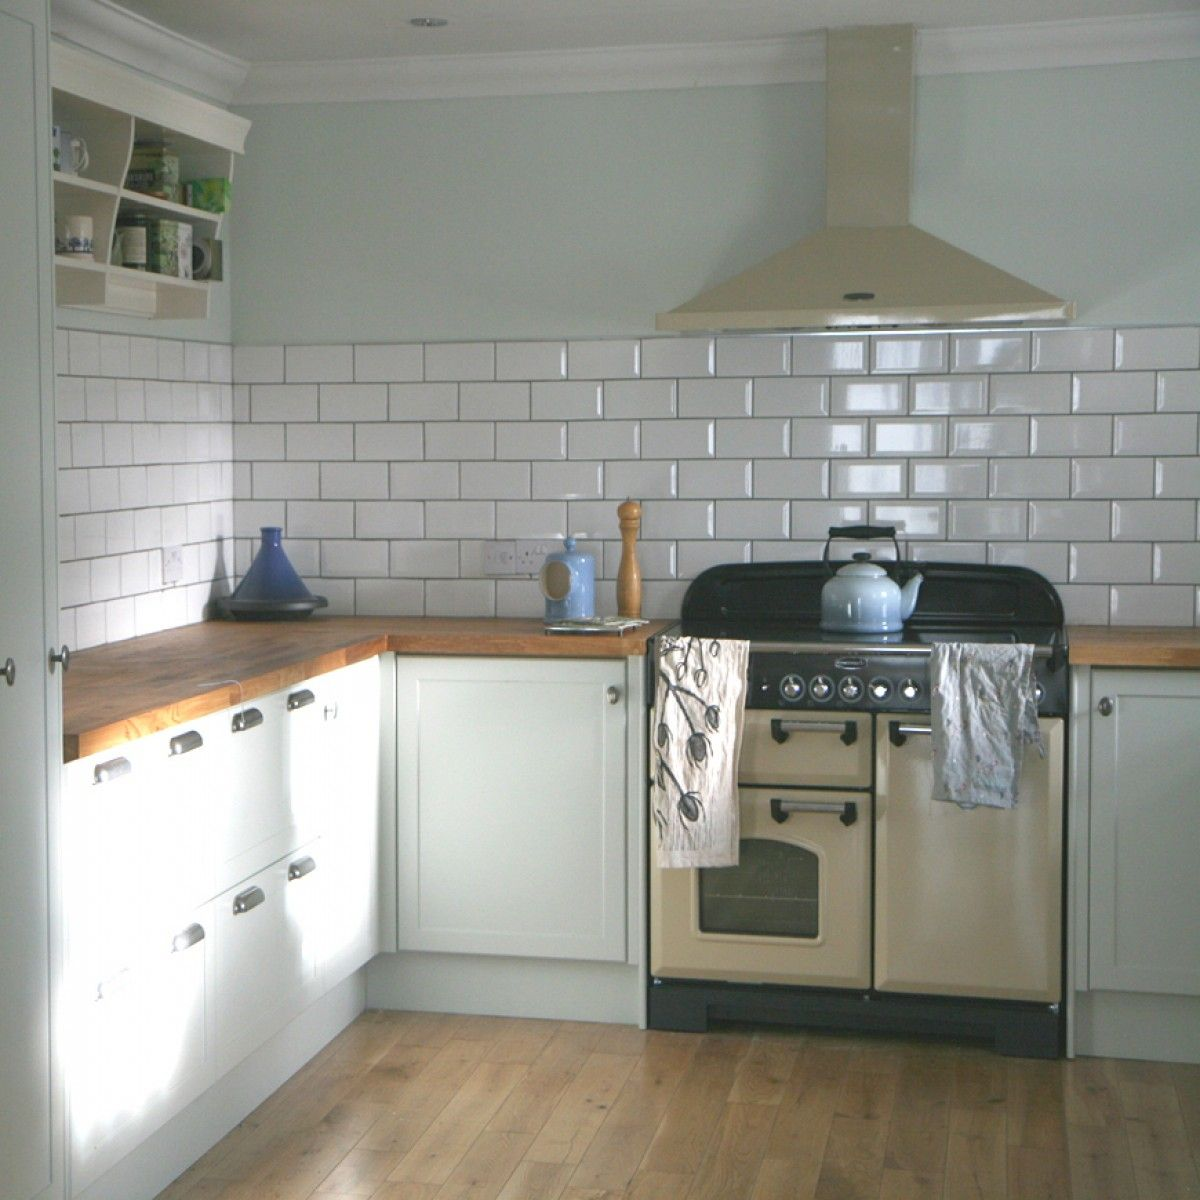 Tiles In Kitchen White Subway Tile In Modern Kitchen Google Search White Gloss